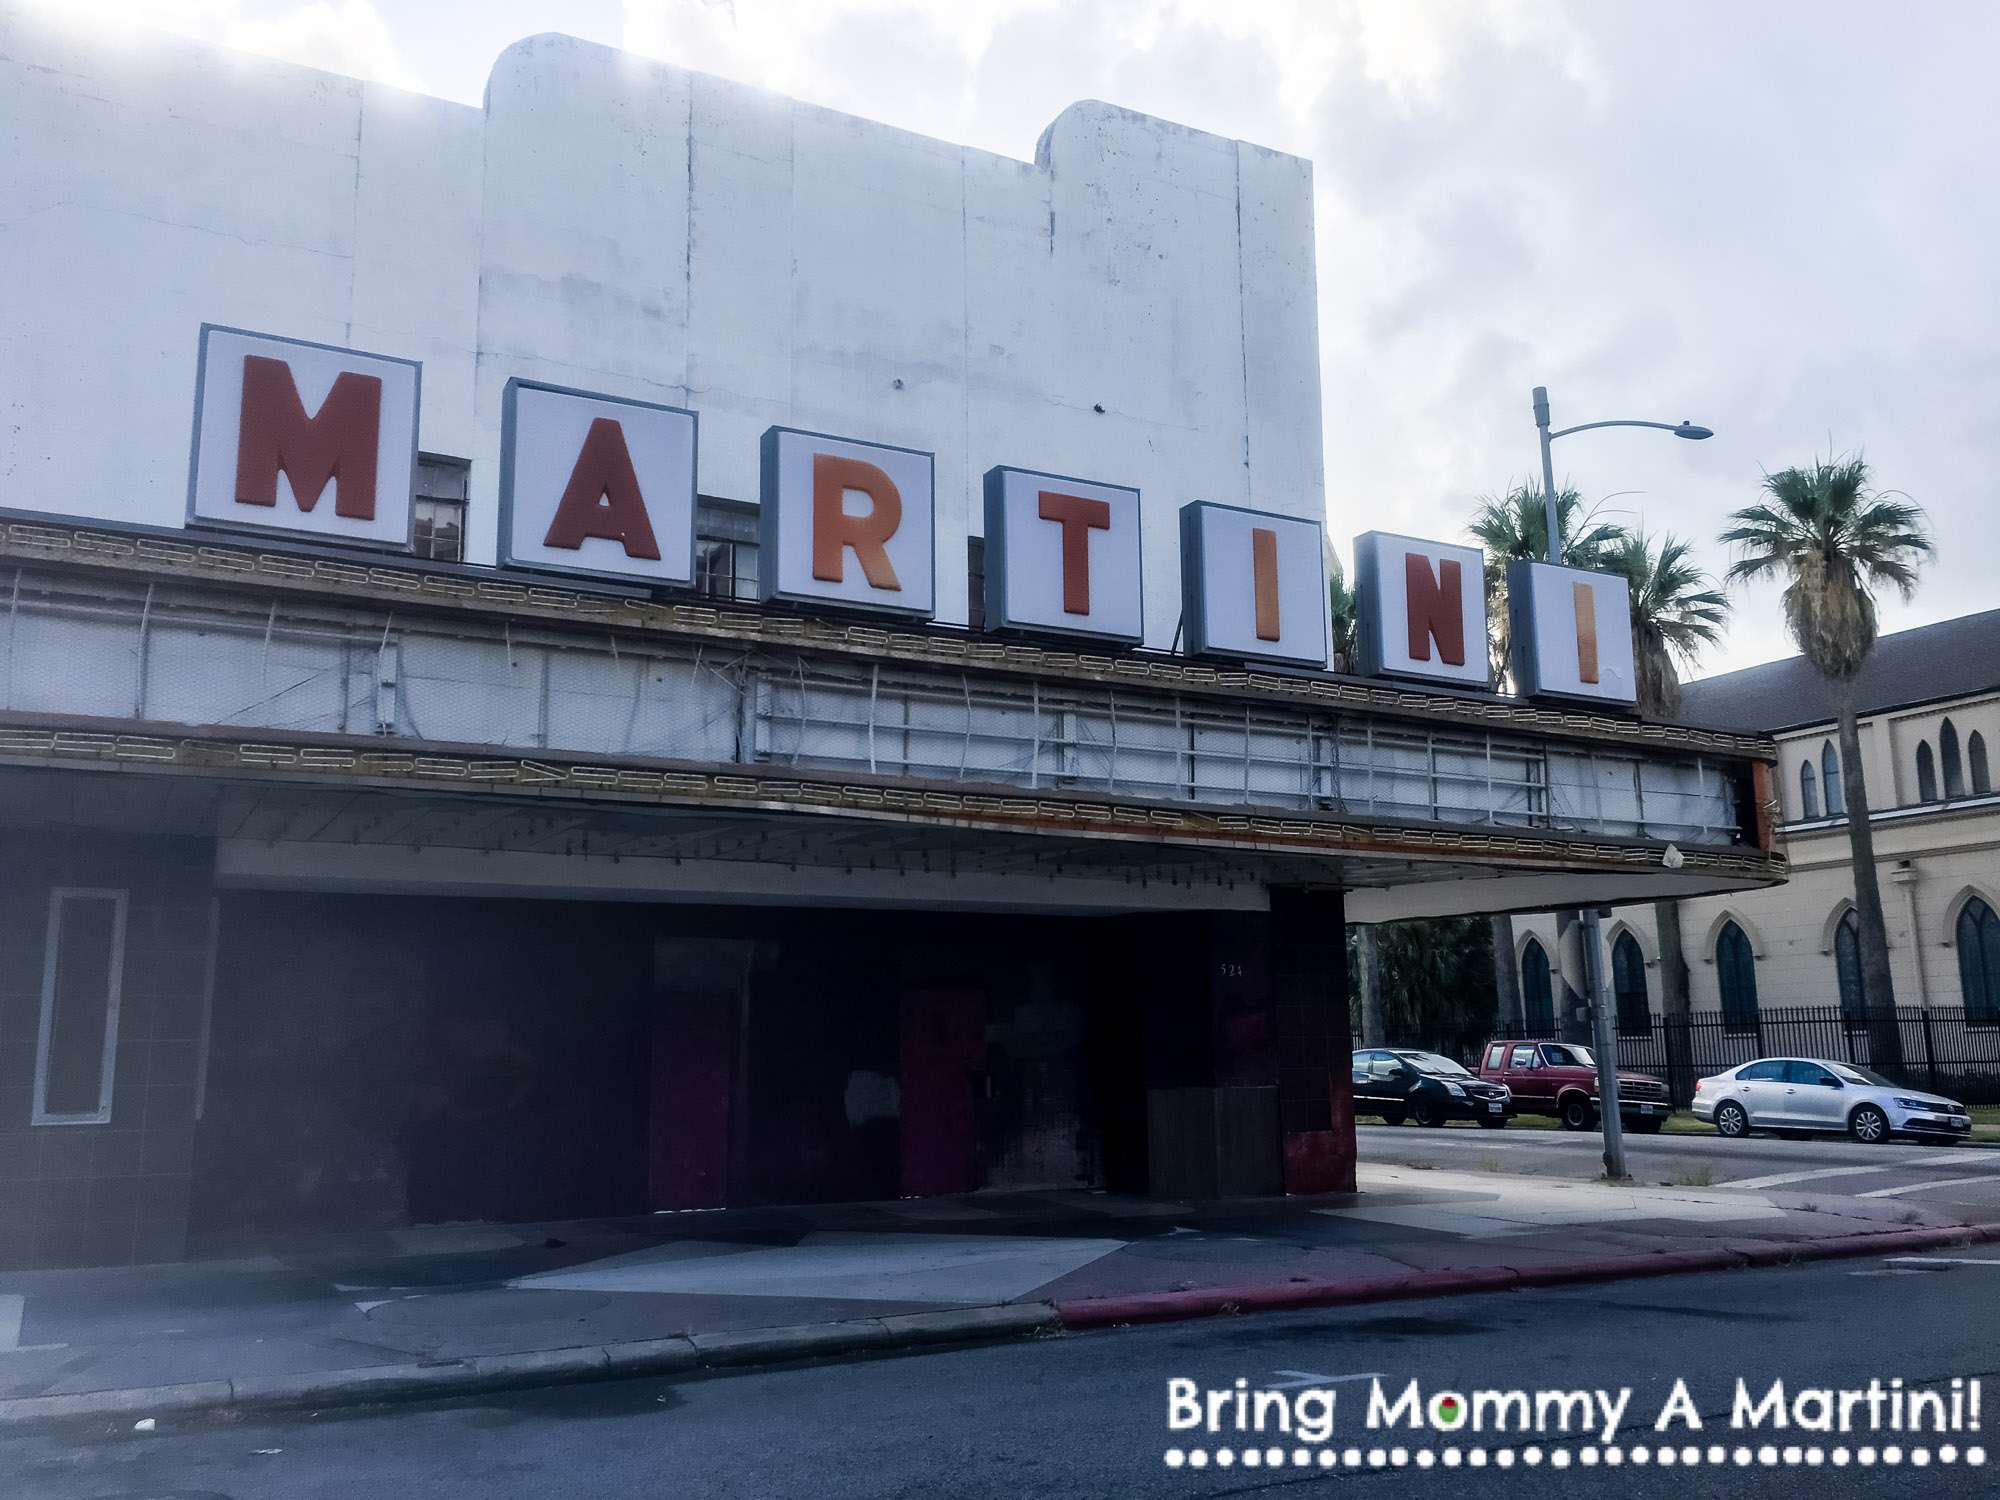 The old Martini Theater - built in 1937